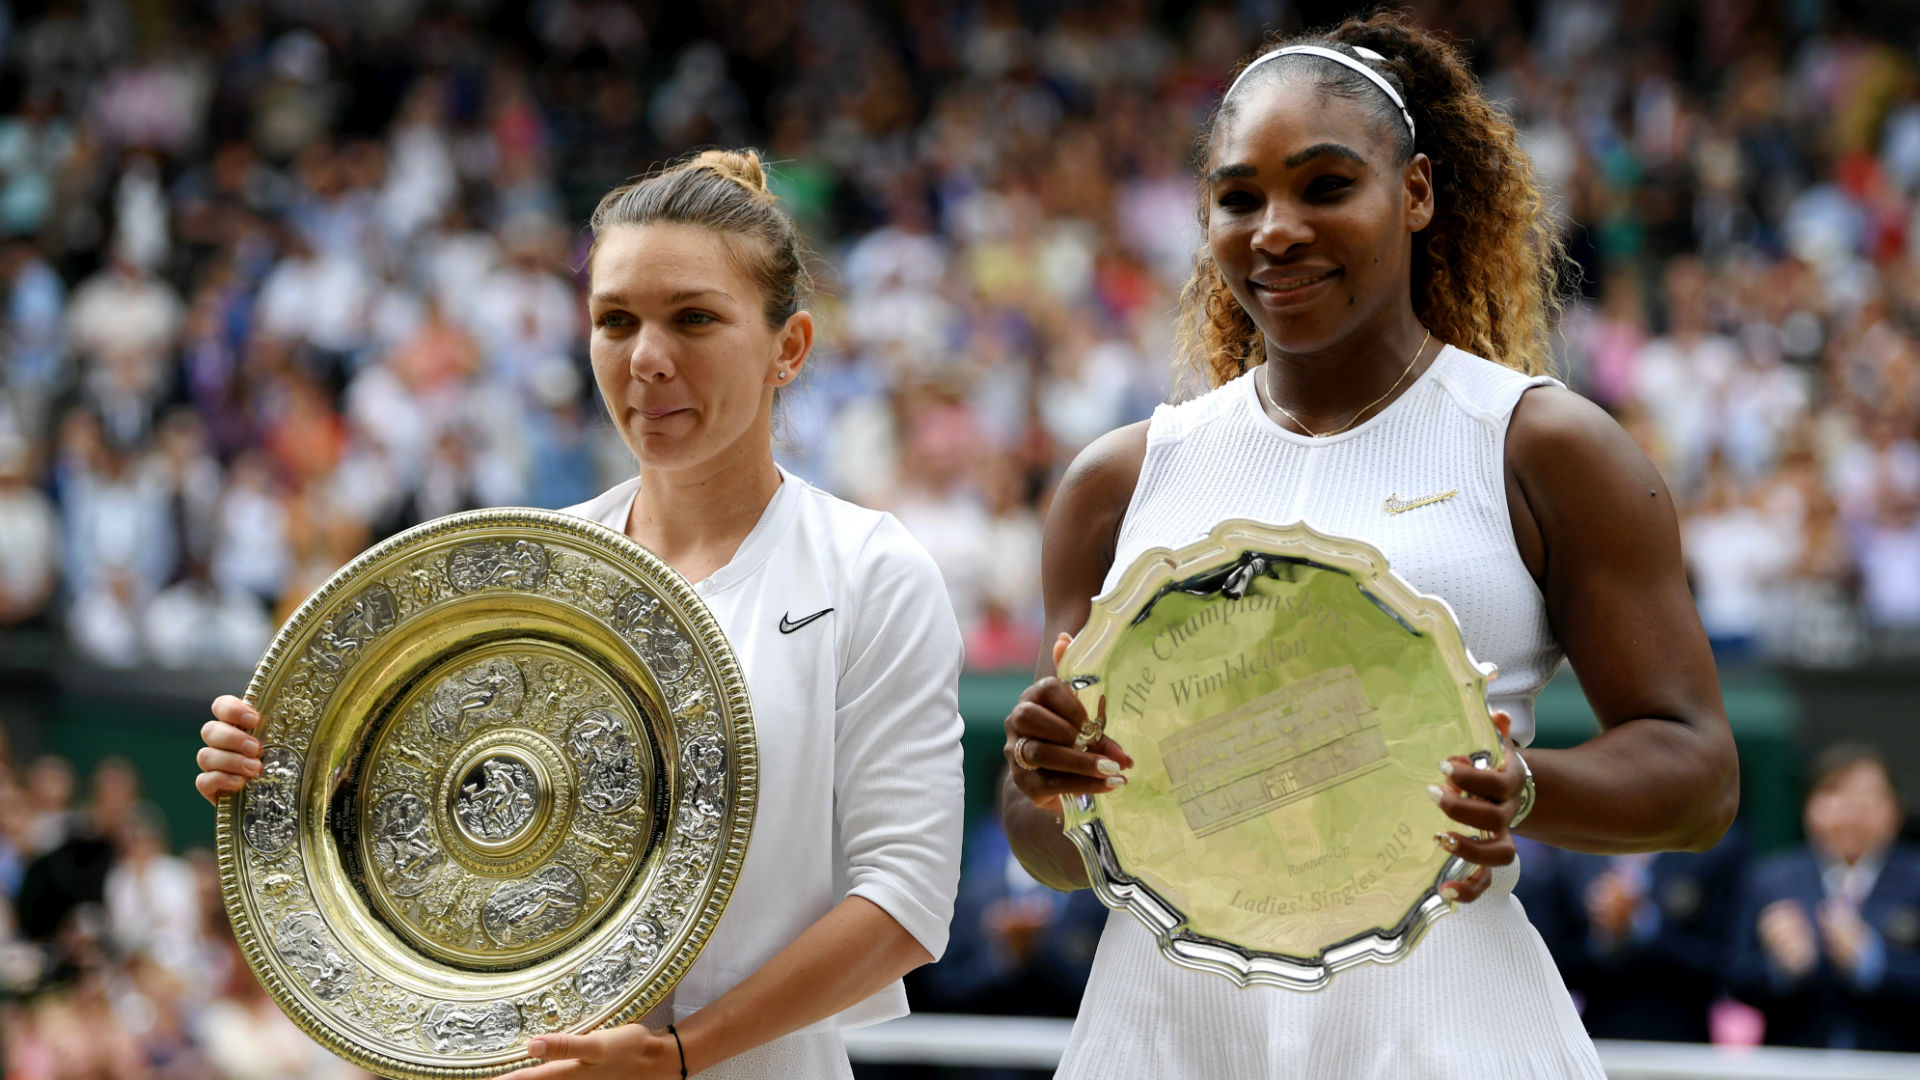 Halep happy to shrug off Serena fear factor for Wimbledon glory